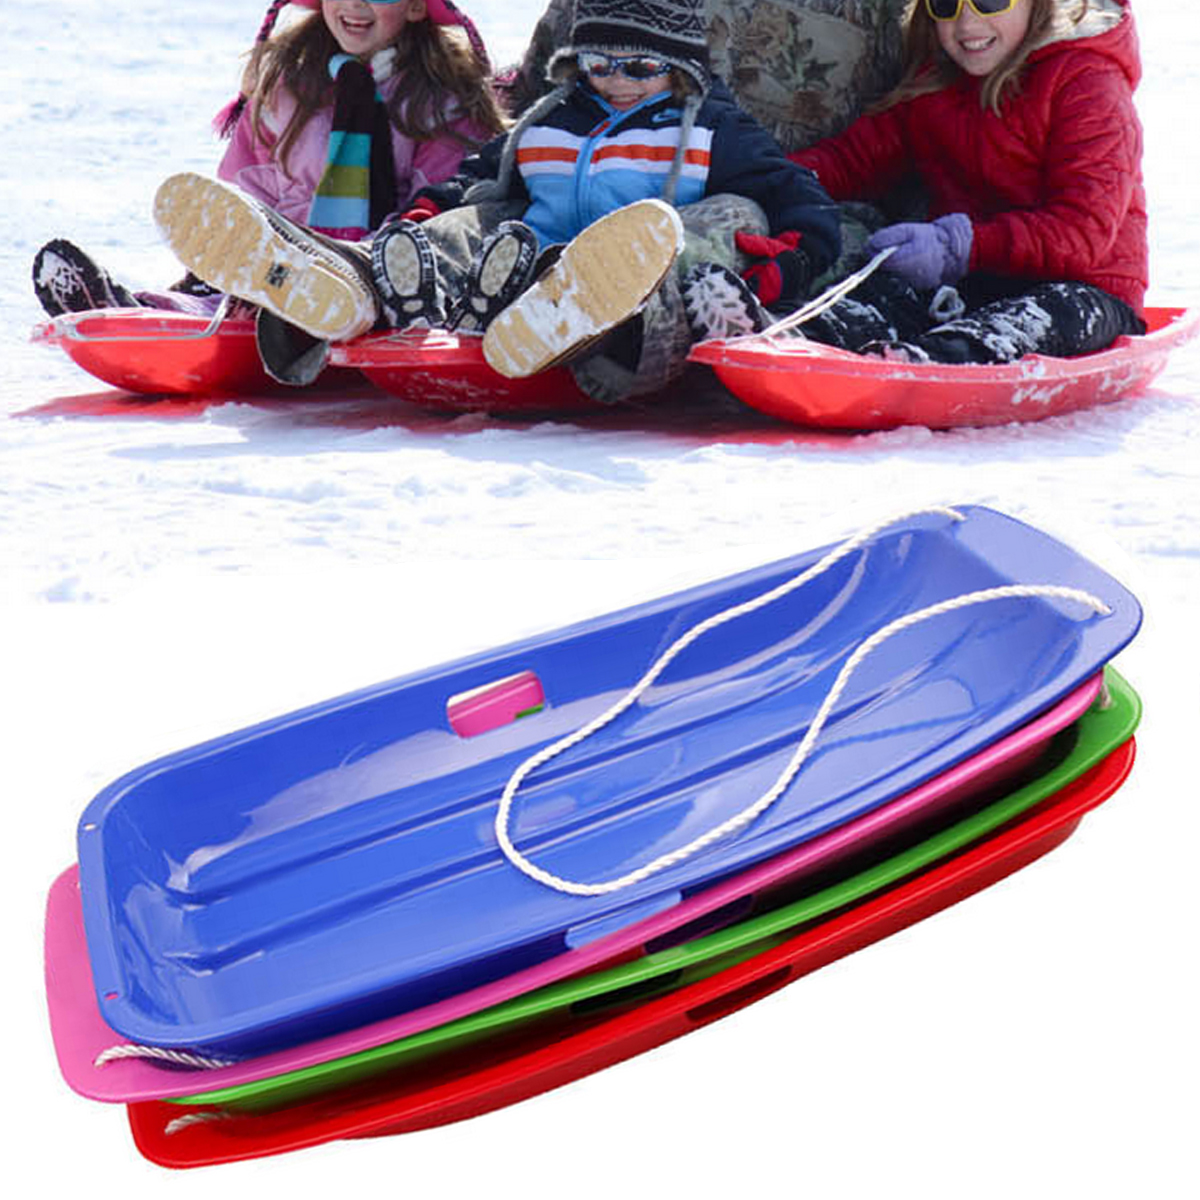 Snow Sled Boat Board Sledge Skiing Toboggan Plastic for Kid Children Christmas Gifts by